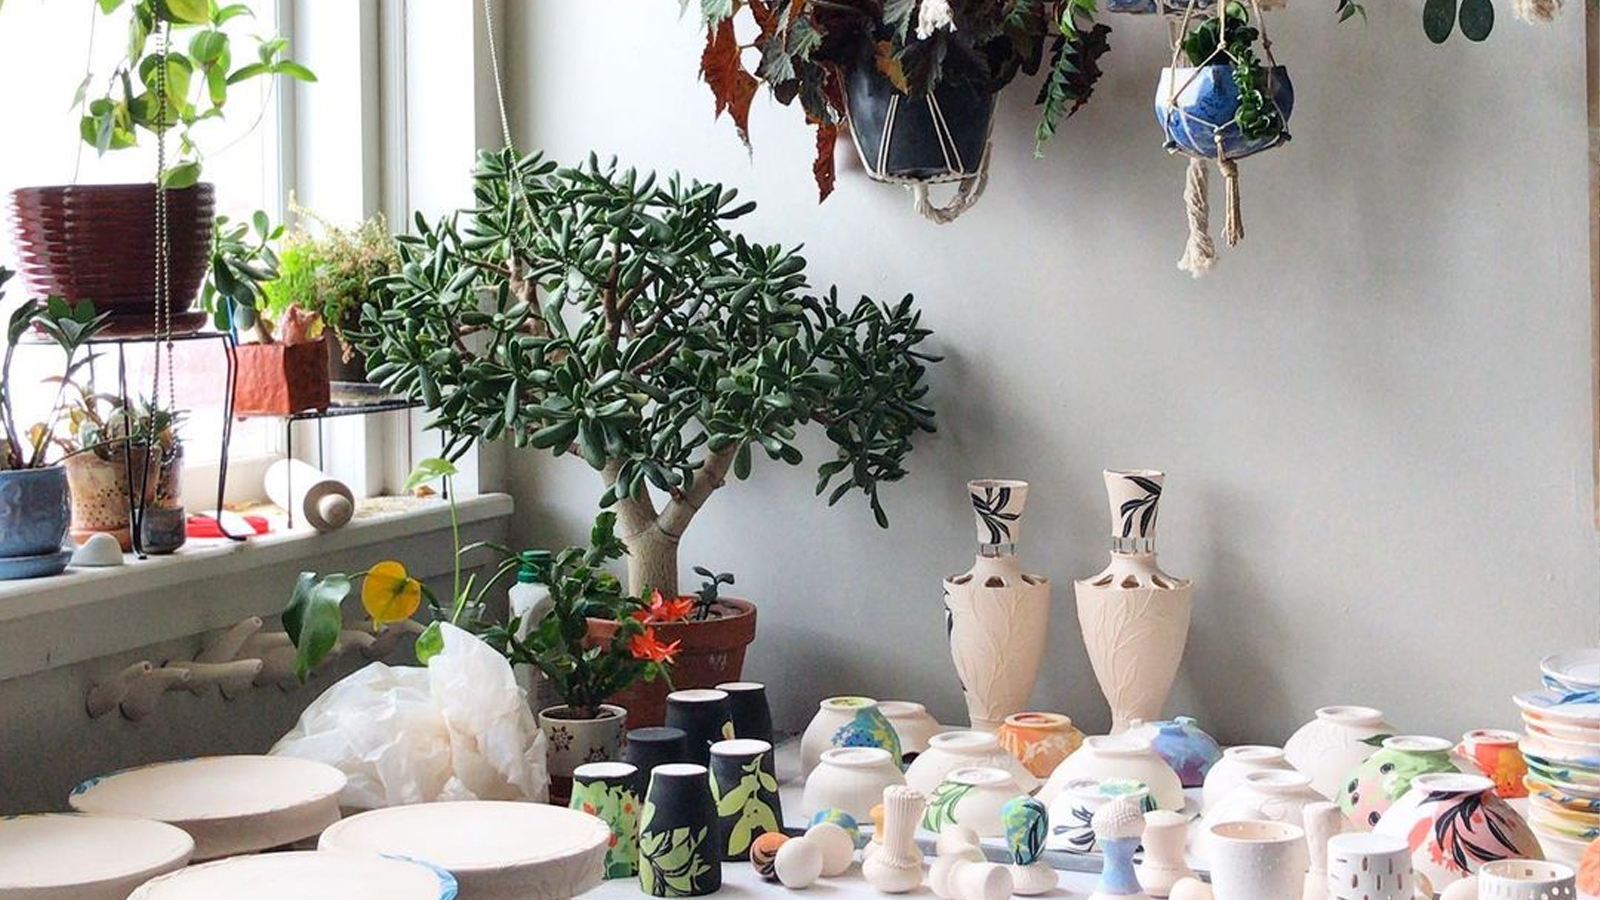 Taylor Sijan, a graduate student in ceramics, celebrated the start of a multi-day glazing project (and the beauty of her plants) in this image from Feb. 7. Learn more at https://go.unl.edu/kcya.